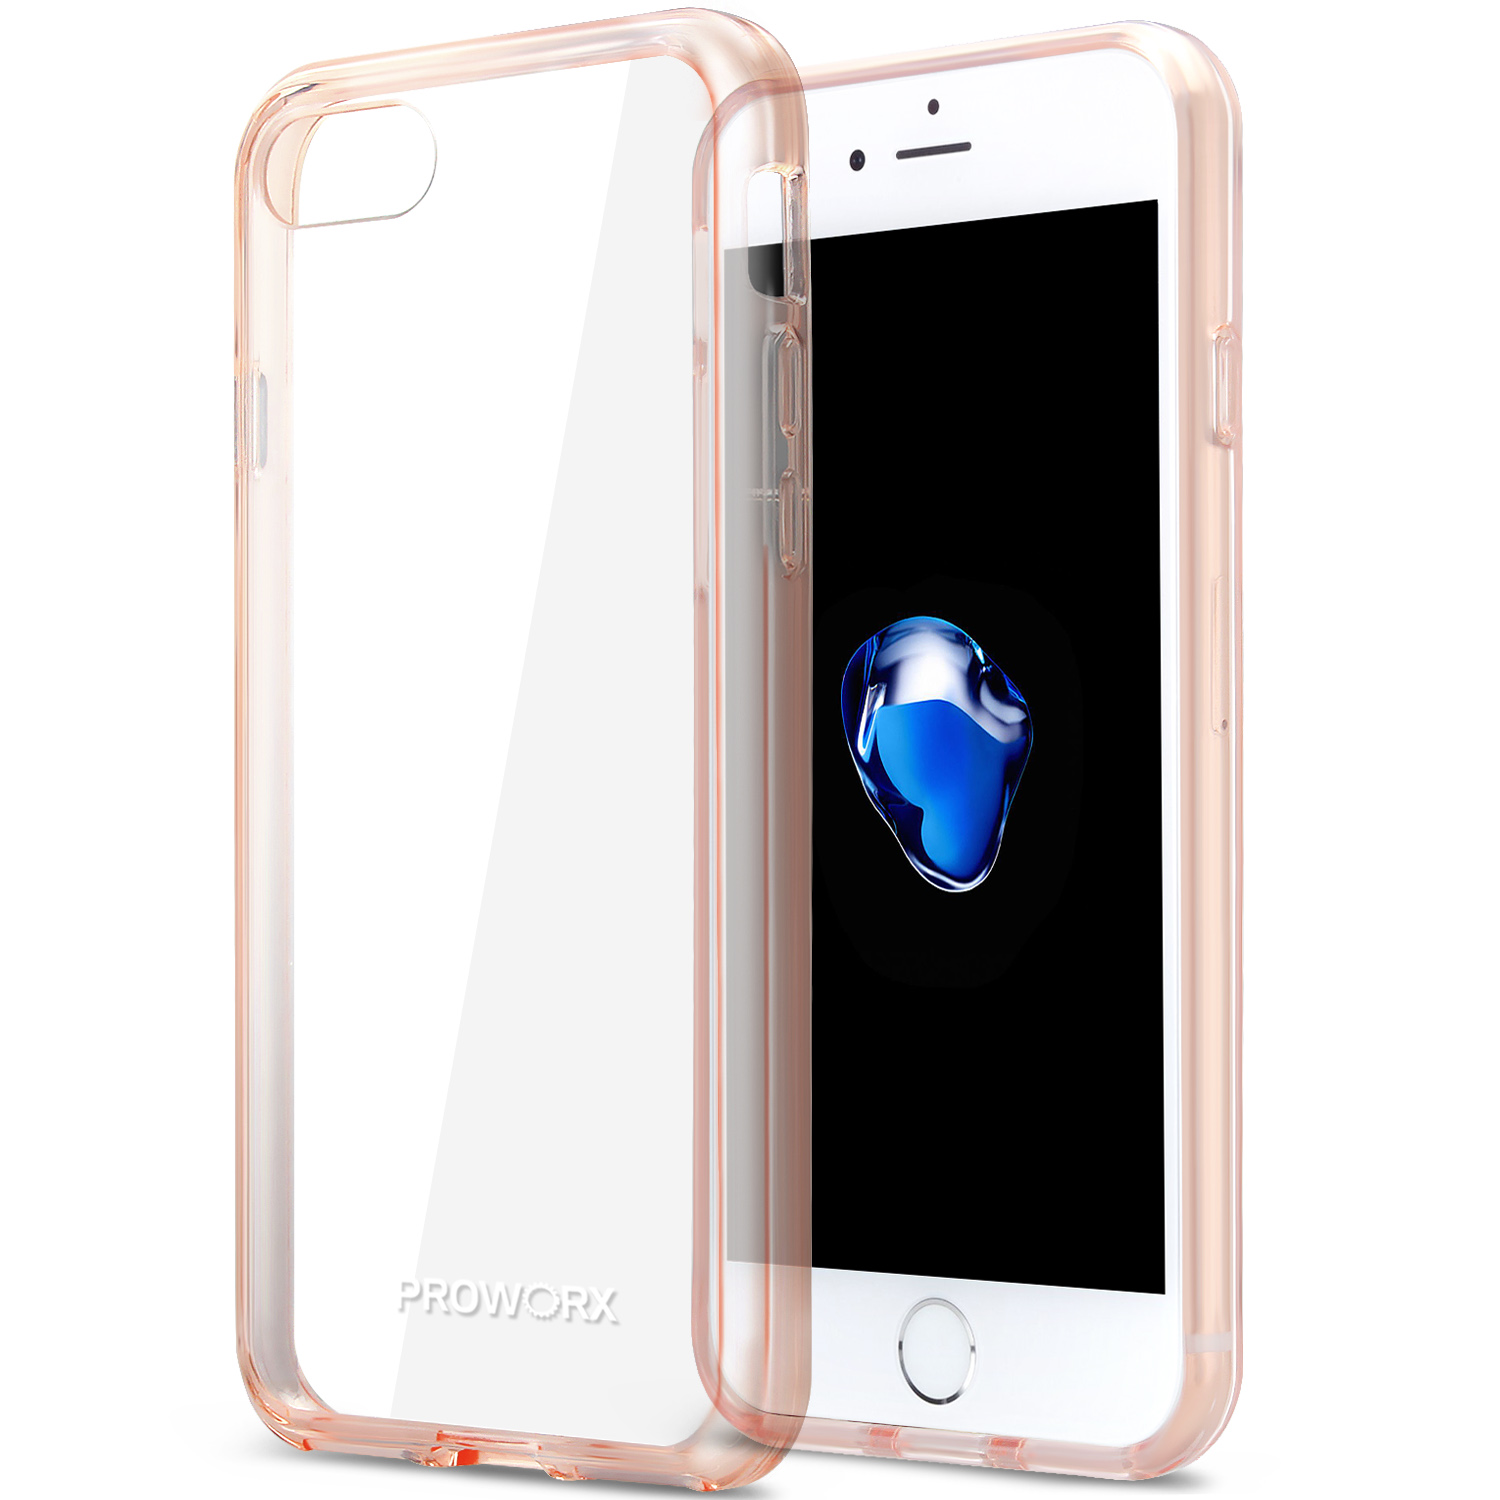 Apple iPhone 6 Plus 6S Plus (5.5) Rose Gold ProWorx Shock Absorption Case Bumper TPU & Anti-Scratch Clear Back Cover